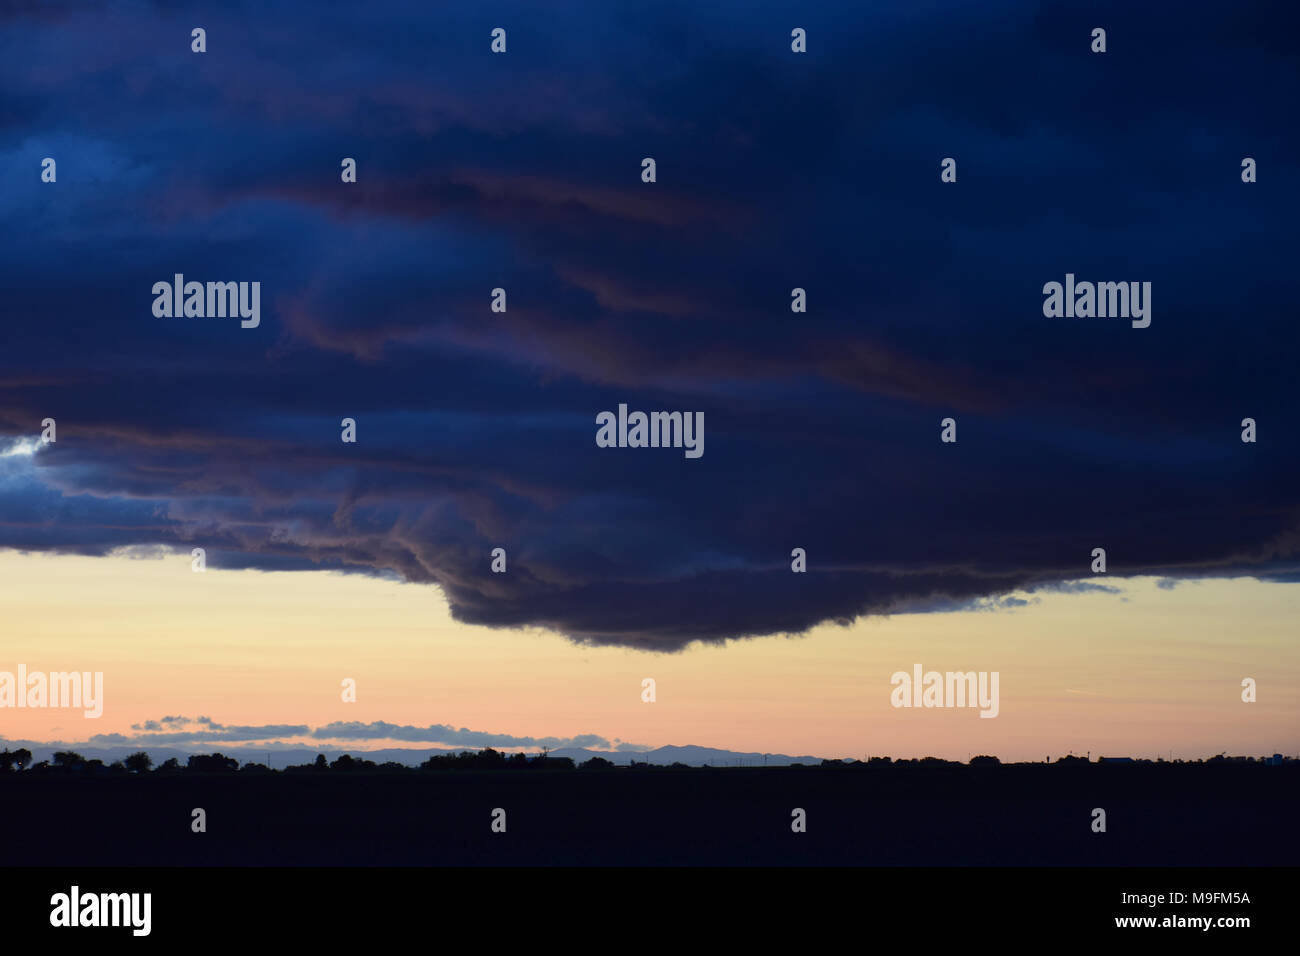 Dark clouds in a stormy sky at dusk - Stock Image